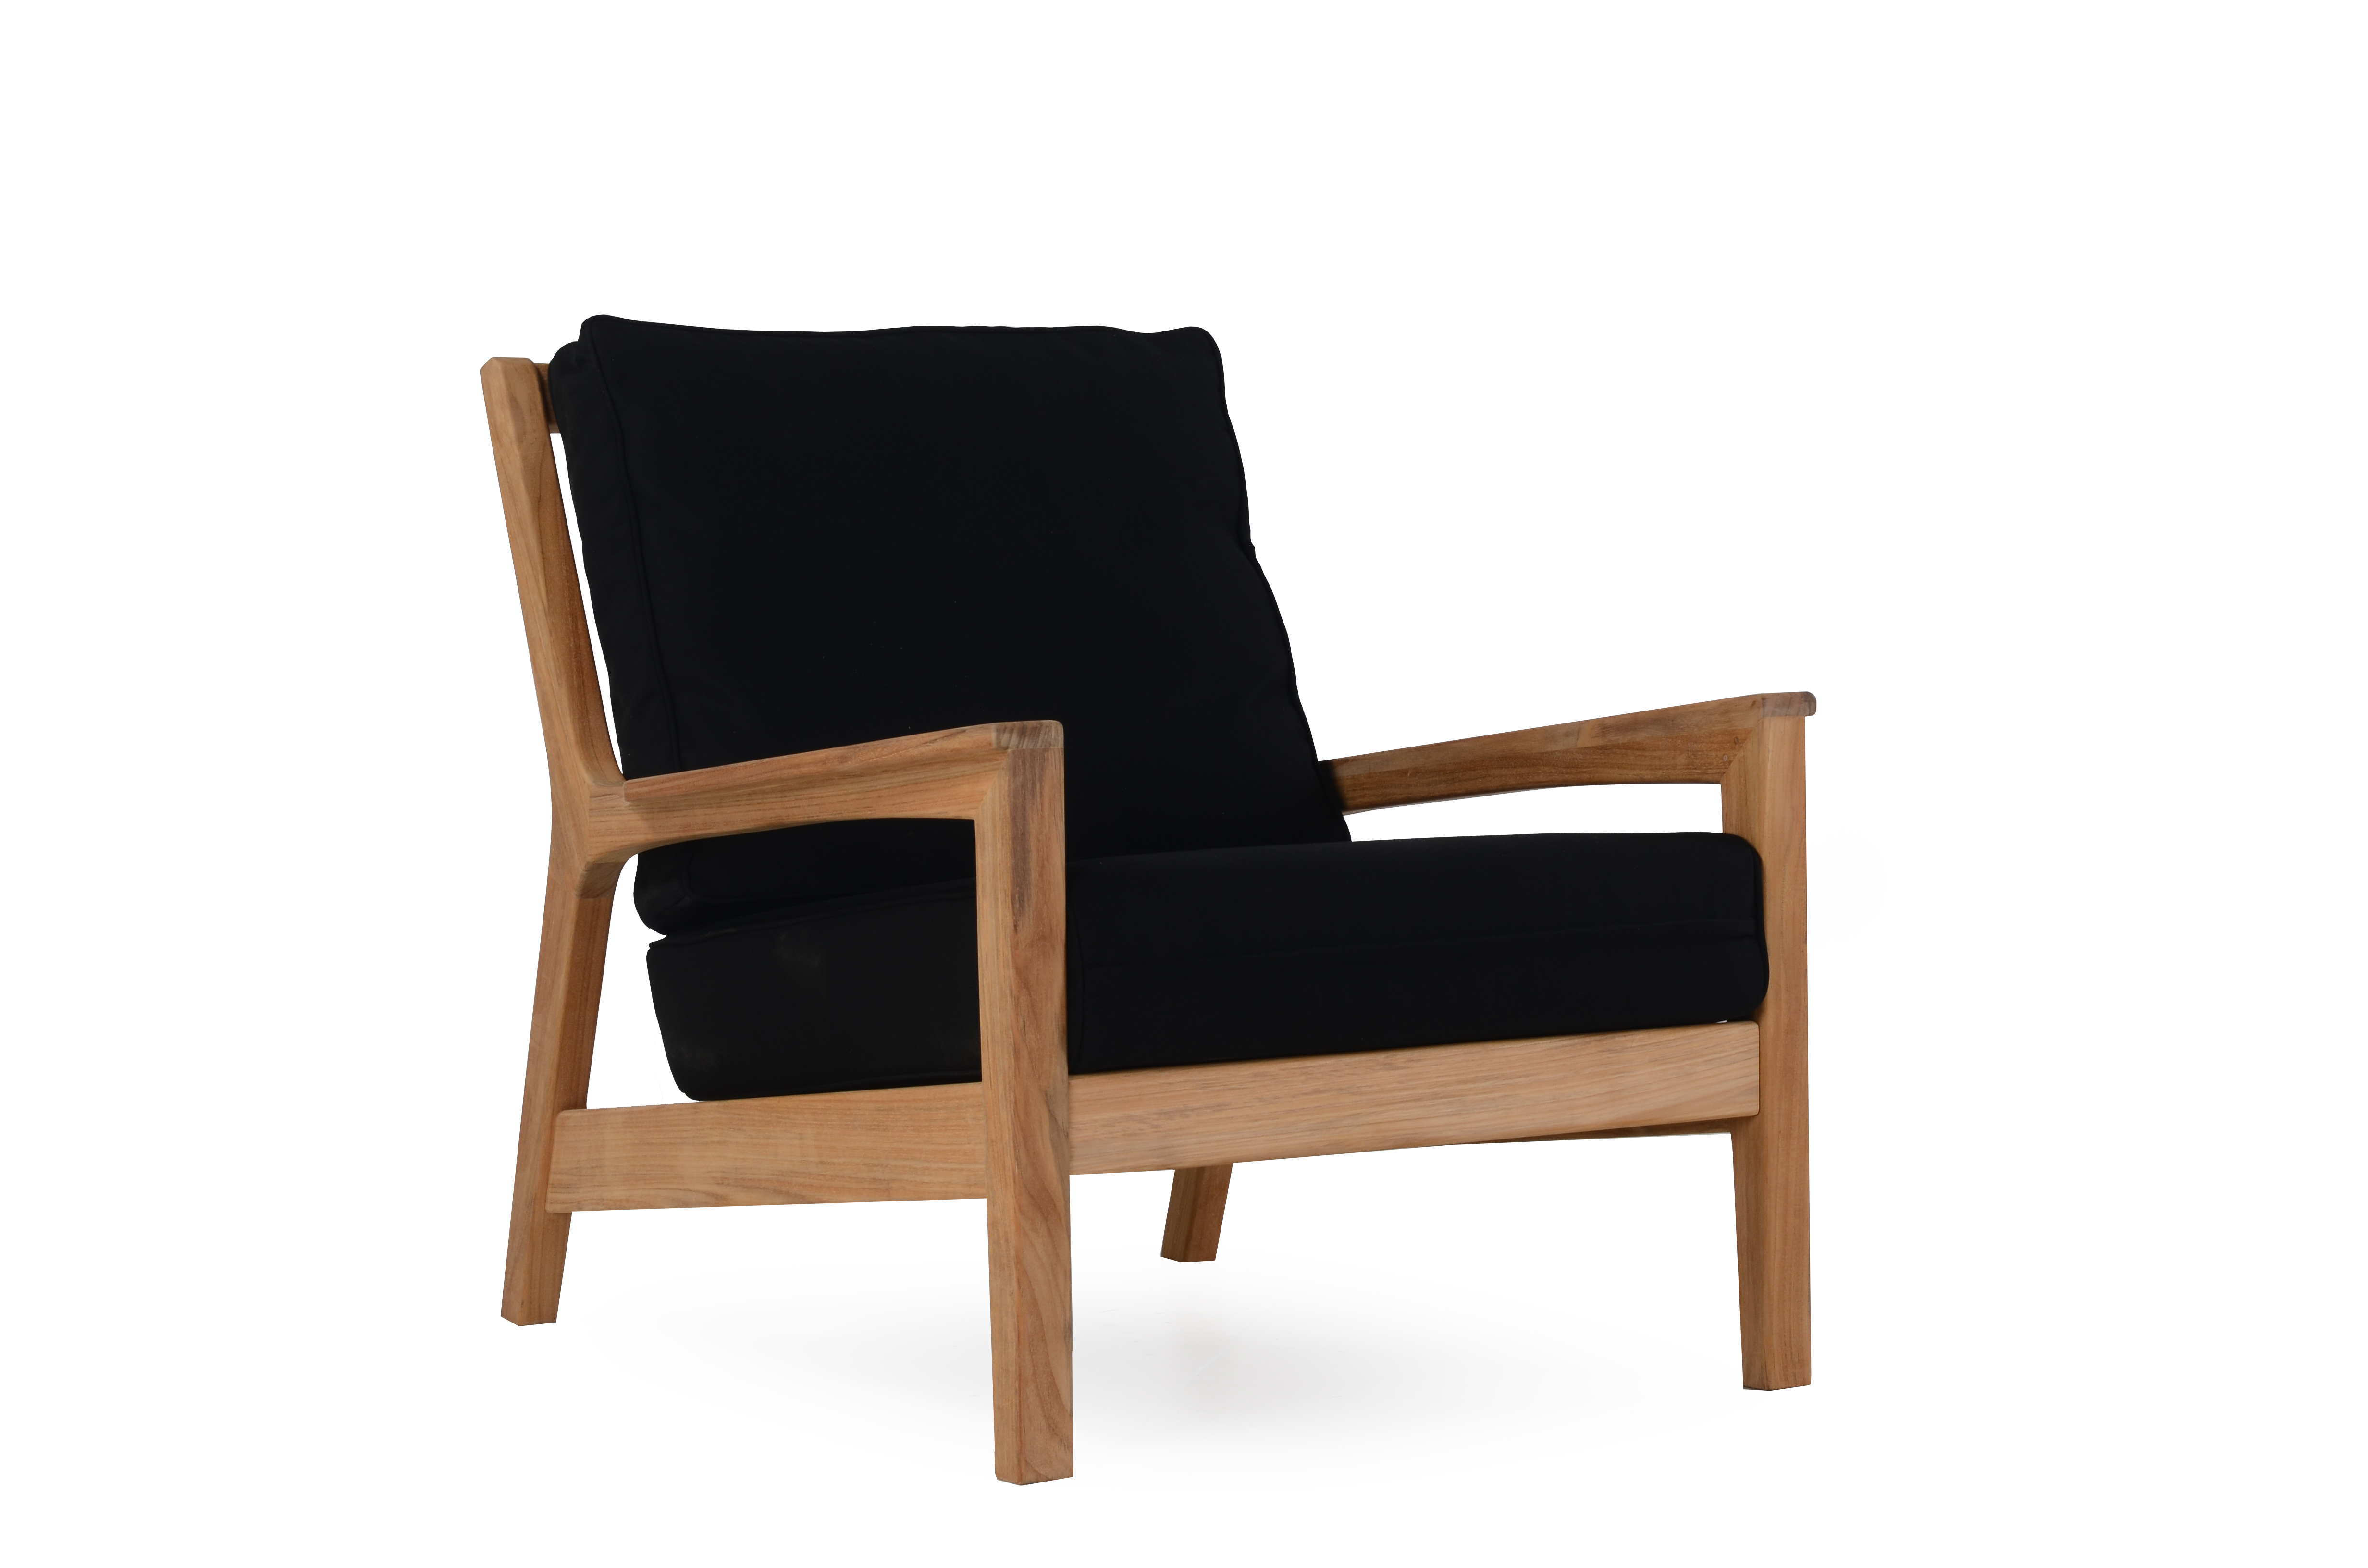 tables chair ekswterikoy ikea xwroy kloven armchair en kafe outdoor chairs furniture relaxing and lounging polythrona club